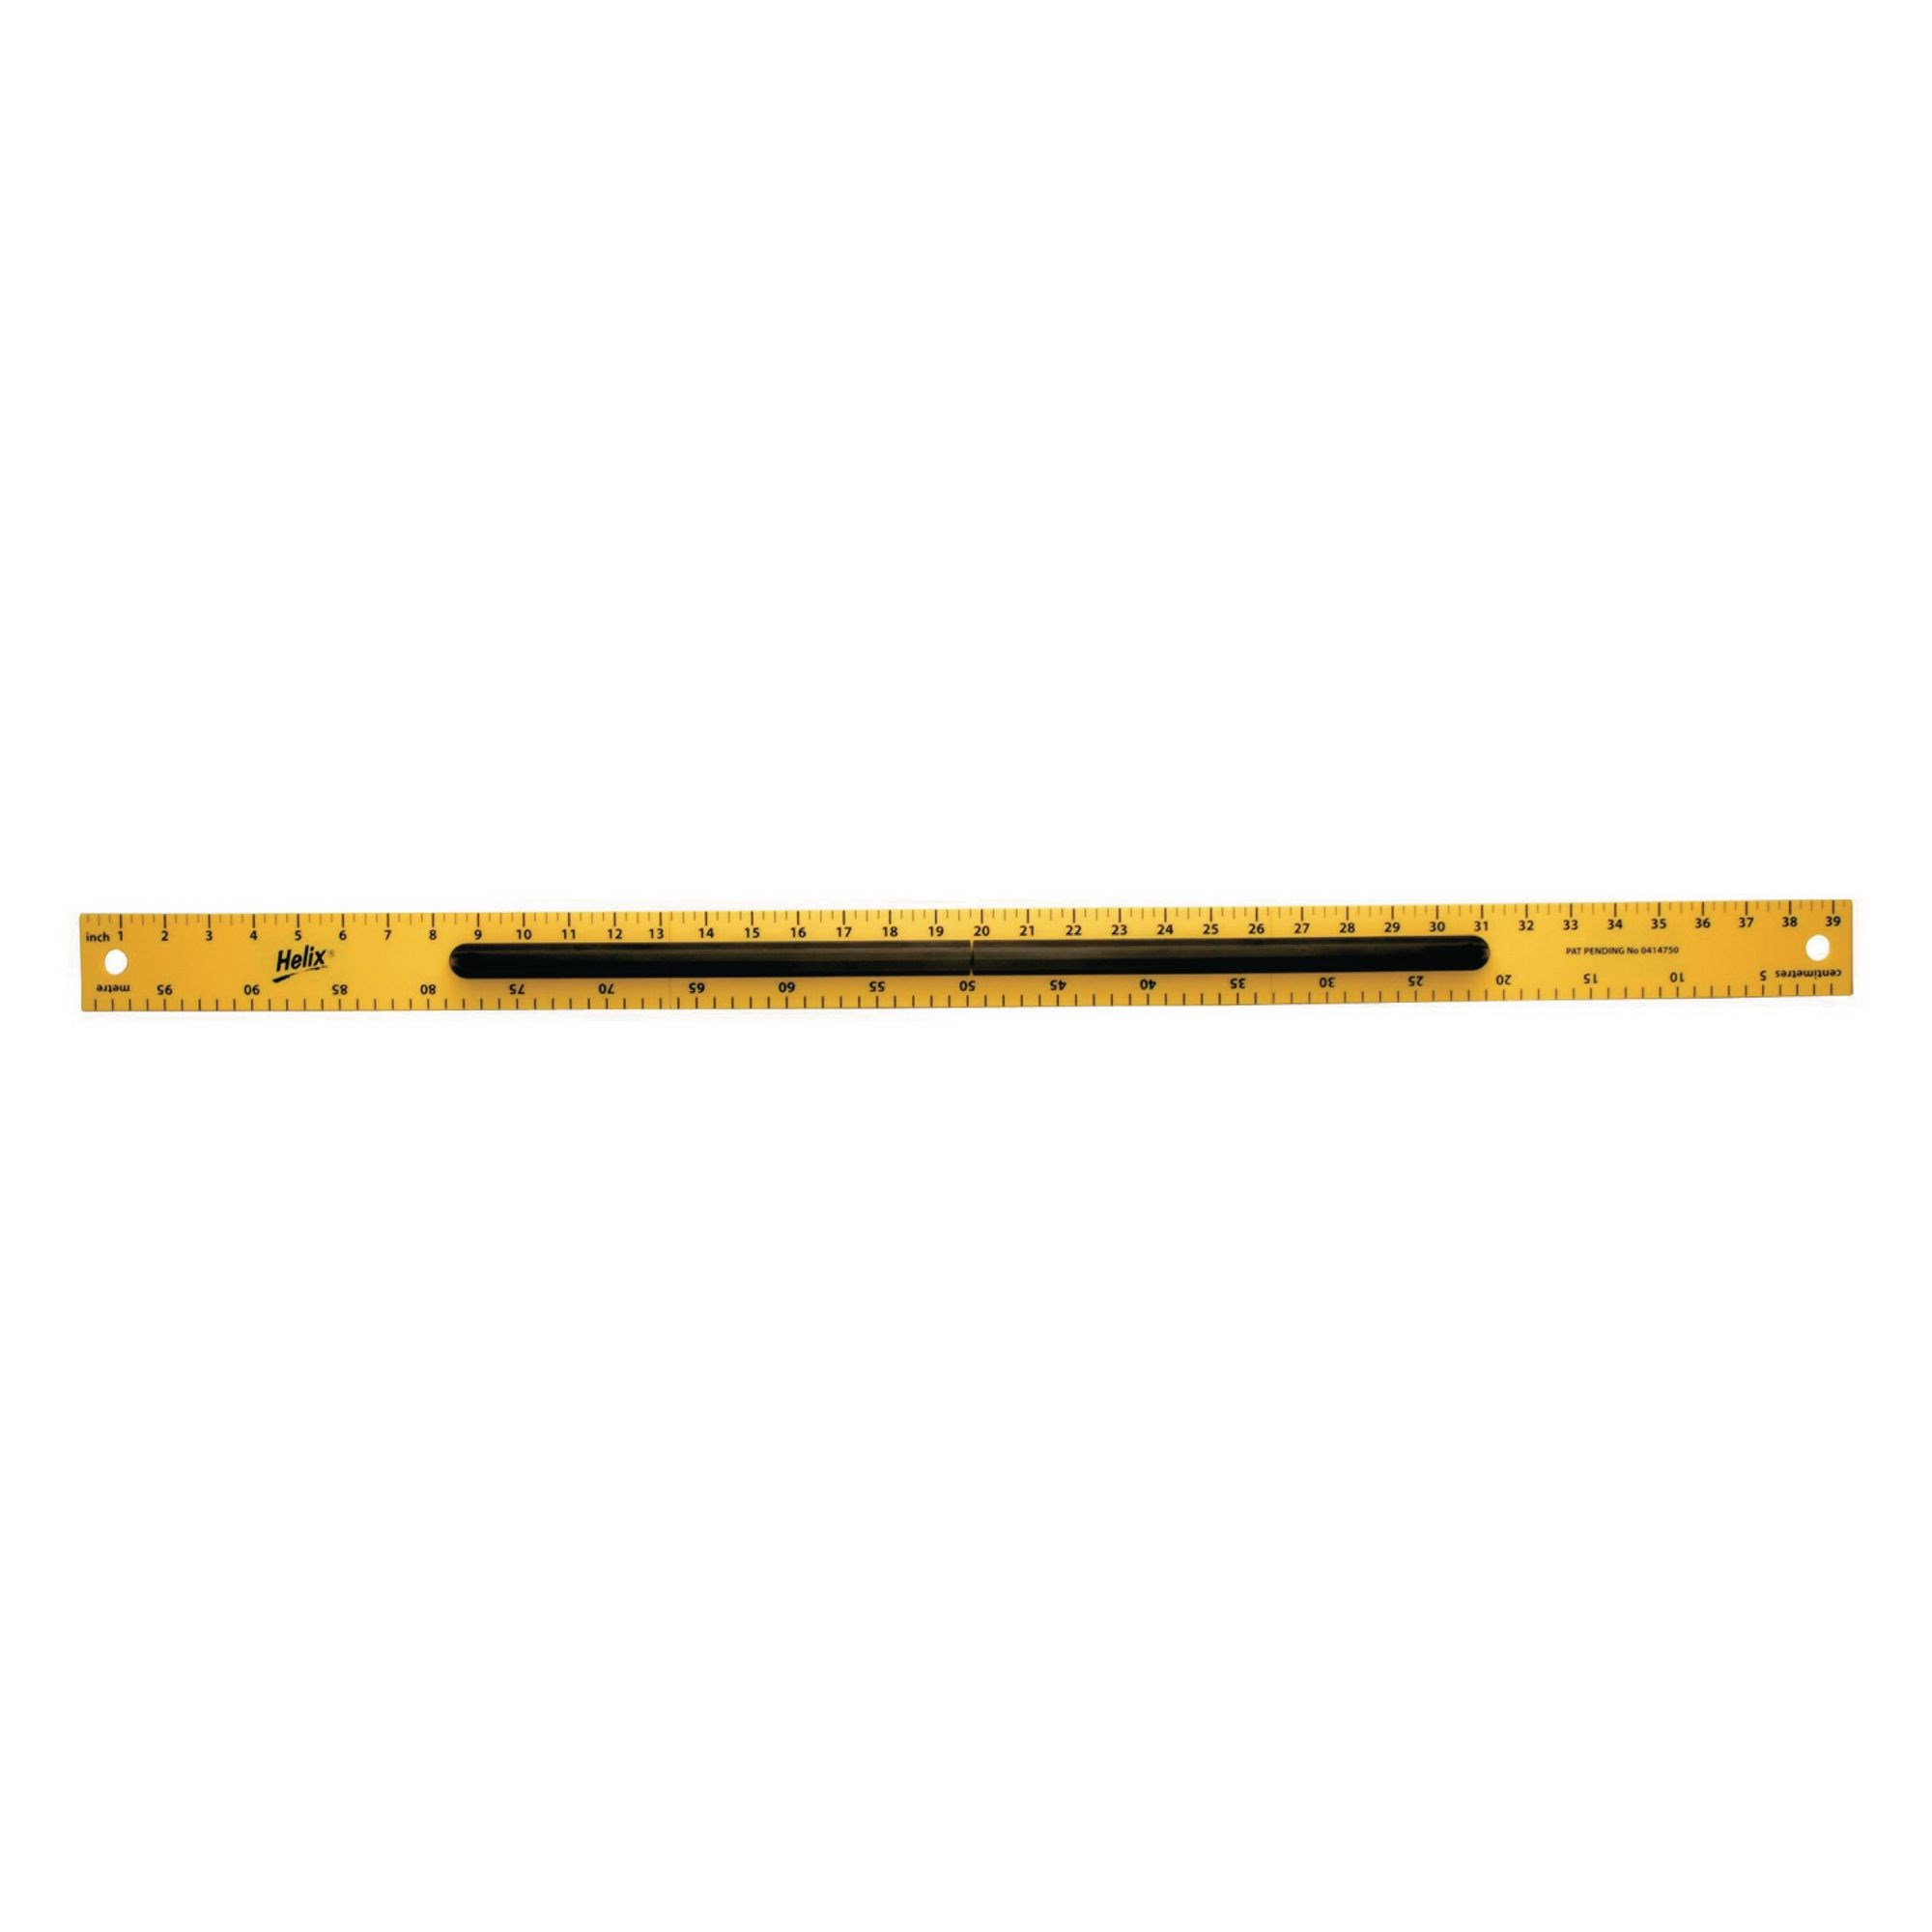 Helix Metre Board Ruler